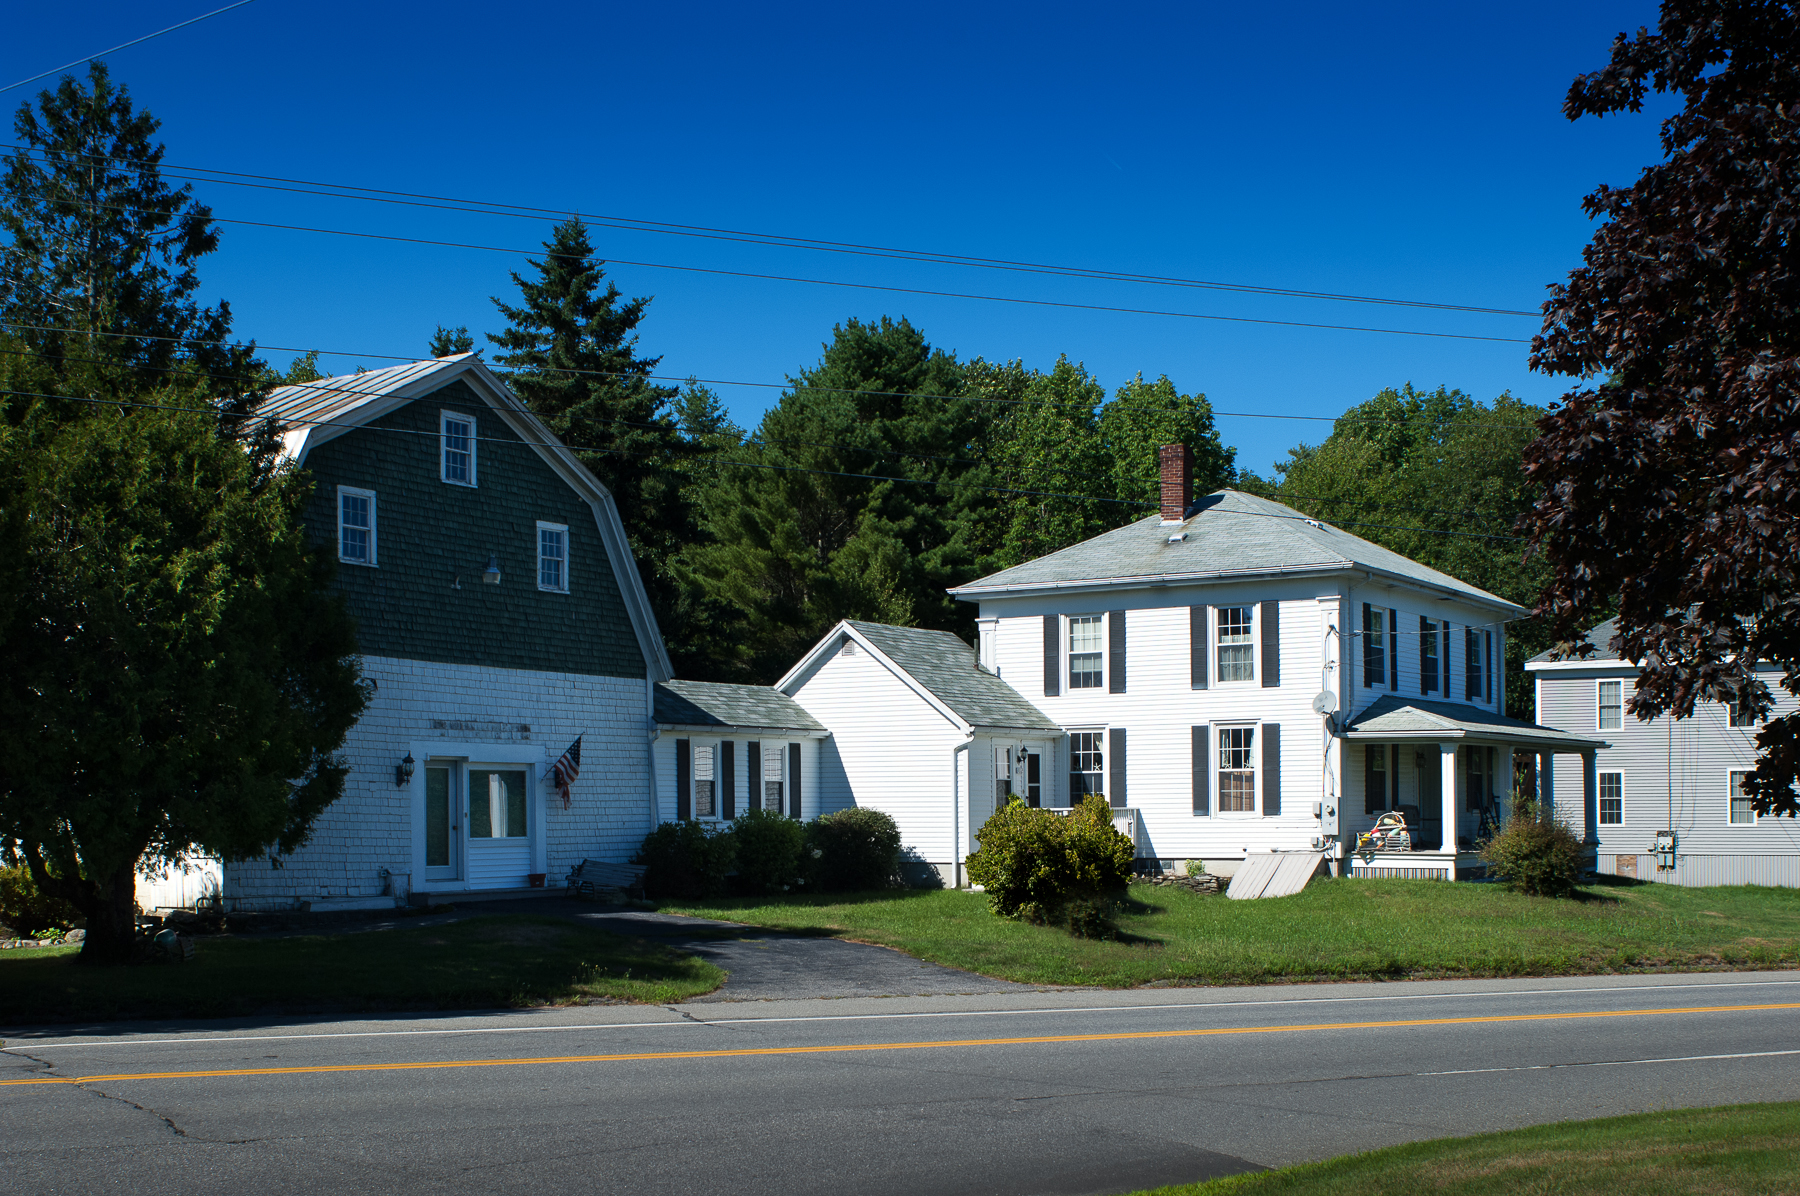 Single Family Home for Sale at Gallery Gatherings 102 Ocean Point Road Boothbay, Maine, 04532 United States